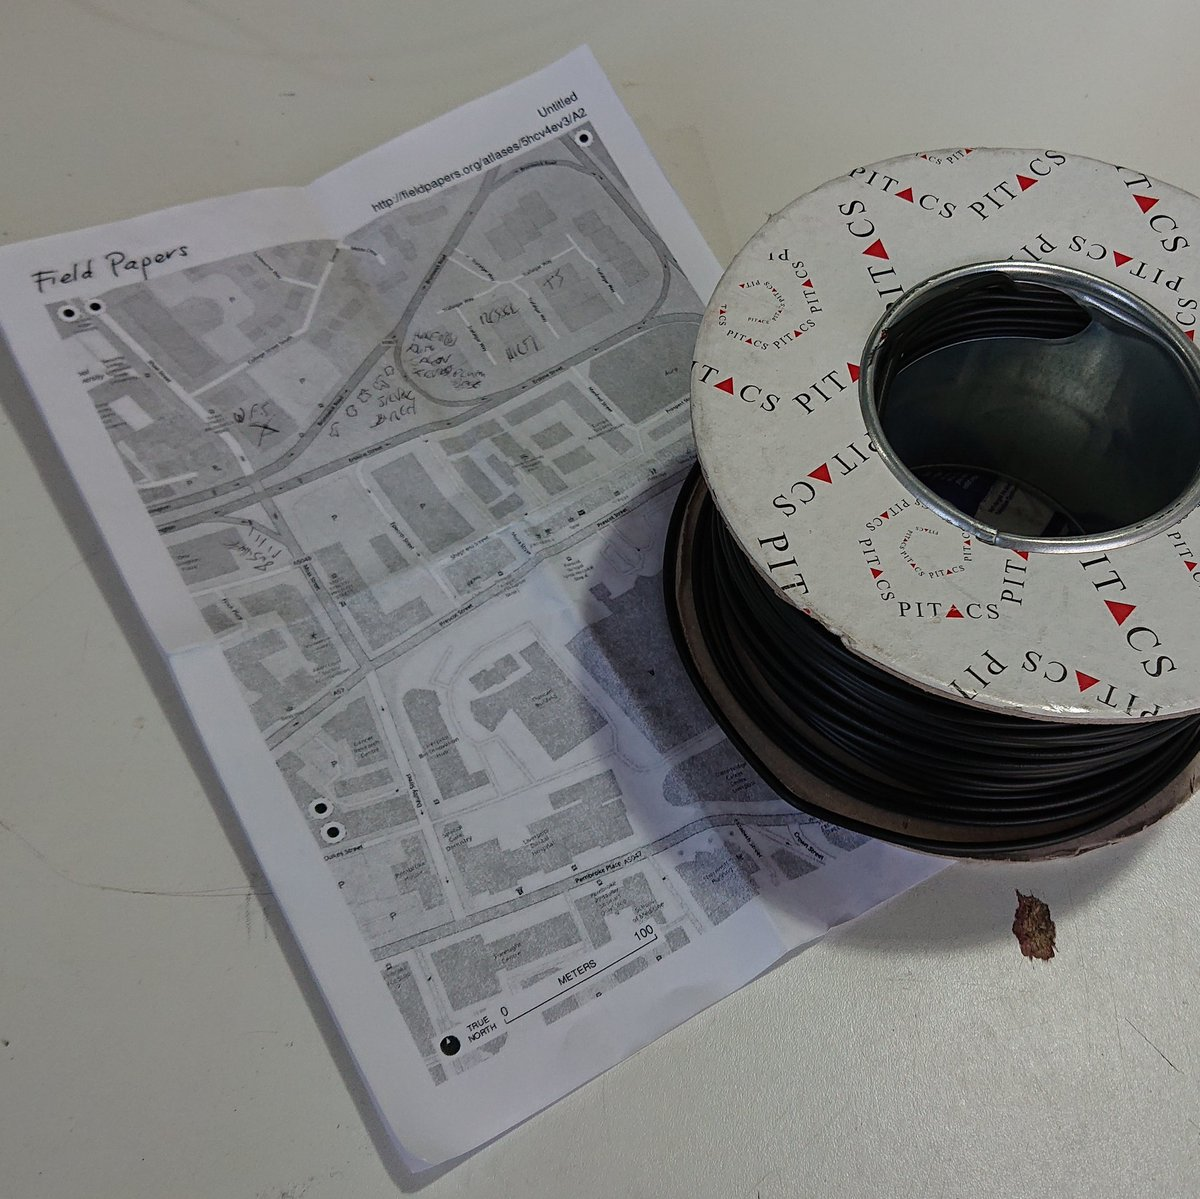 A reel of electrical wire, next to a print out of a map marked up with hand-written notes